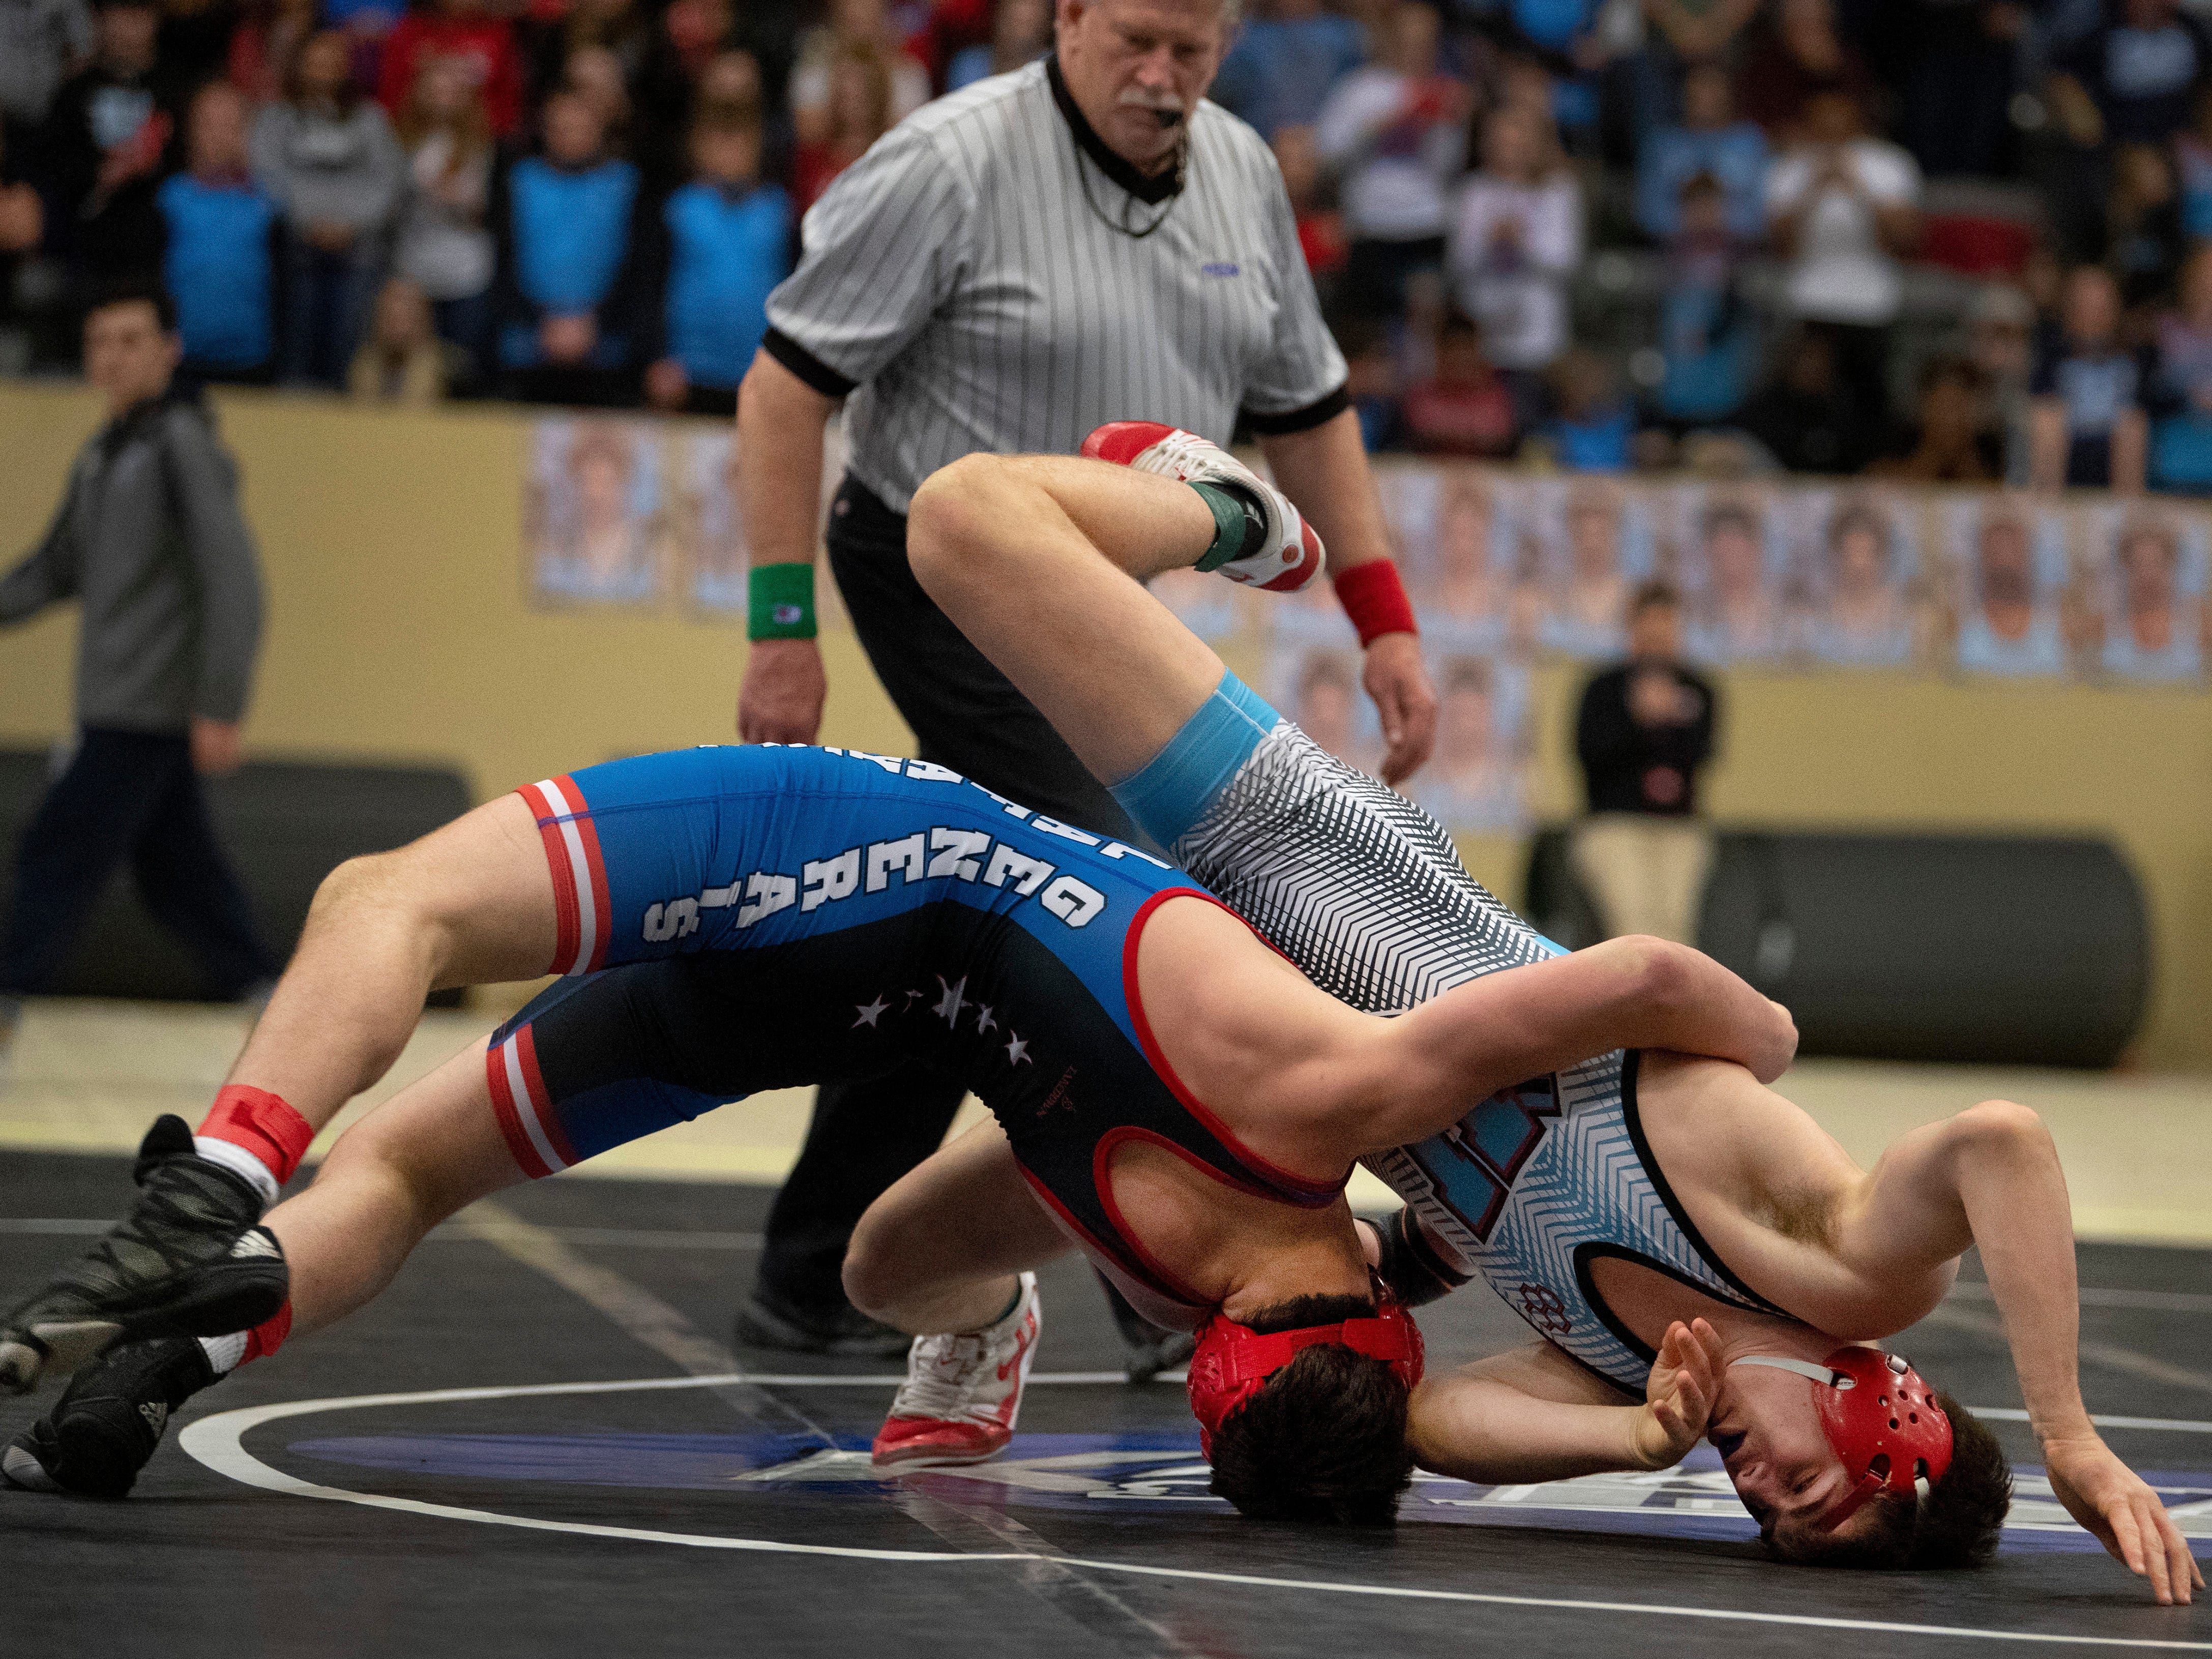 Union County's Dalton Russelburg, right, competes against Lafayette's Brayden Giannone for the 152-pound championship at the KHSAA State Wrestling Championships at the Alltech Arena in Lexington, Ky., Saturday afternoon.